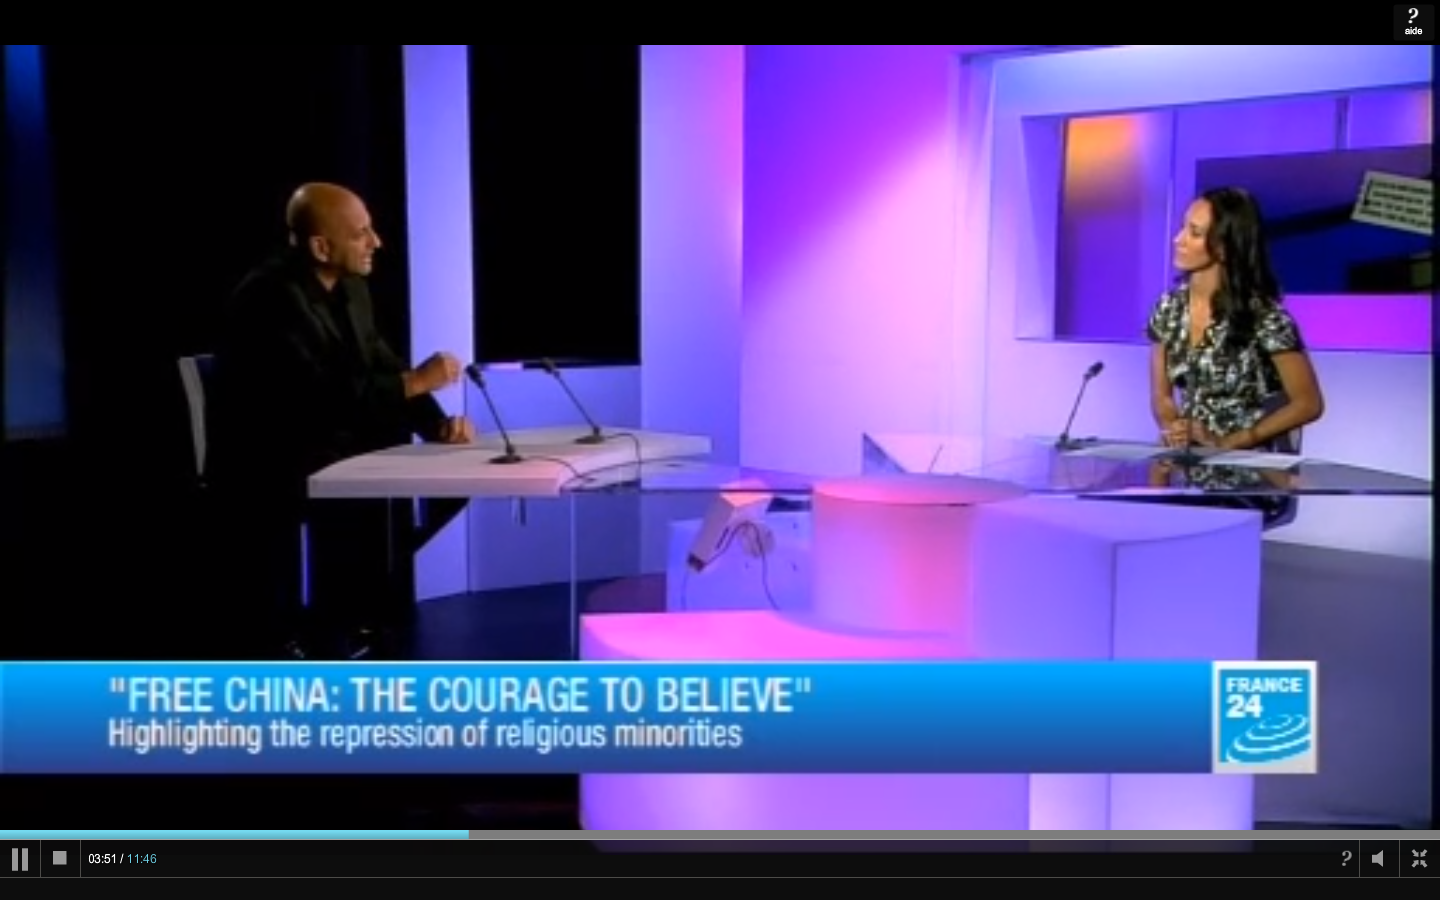 Michael_Perlman_France24_Interview